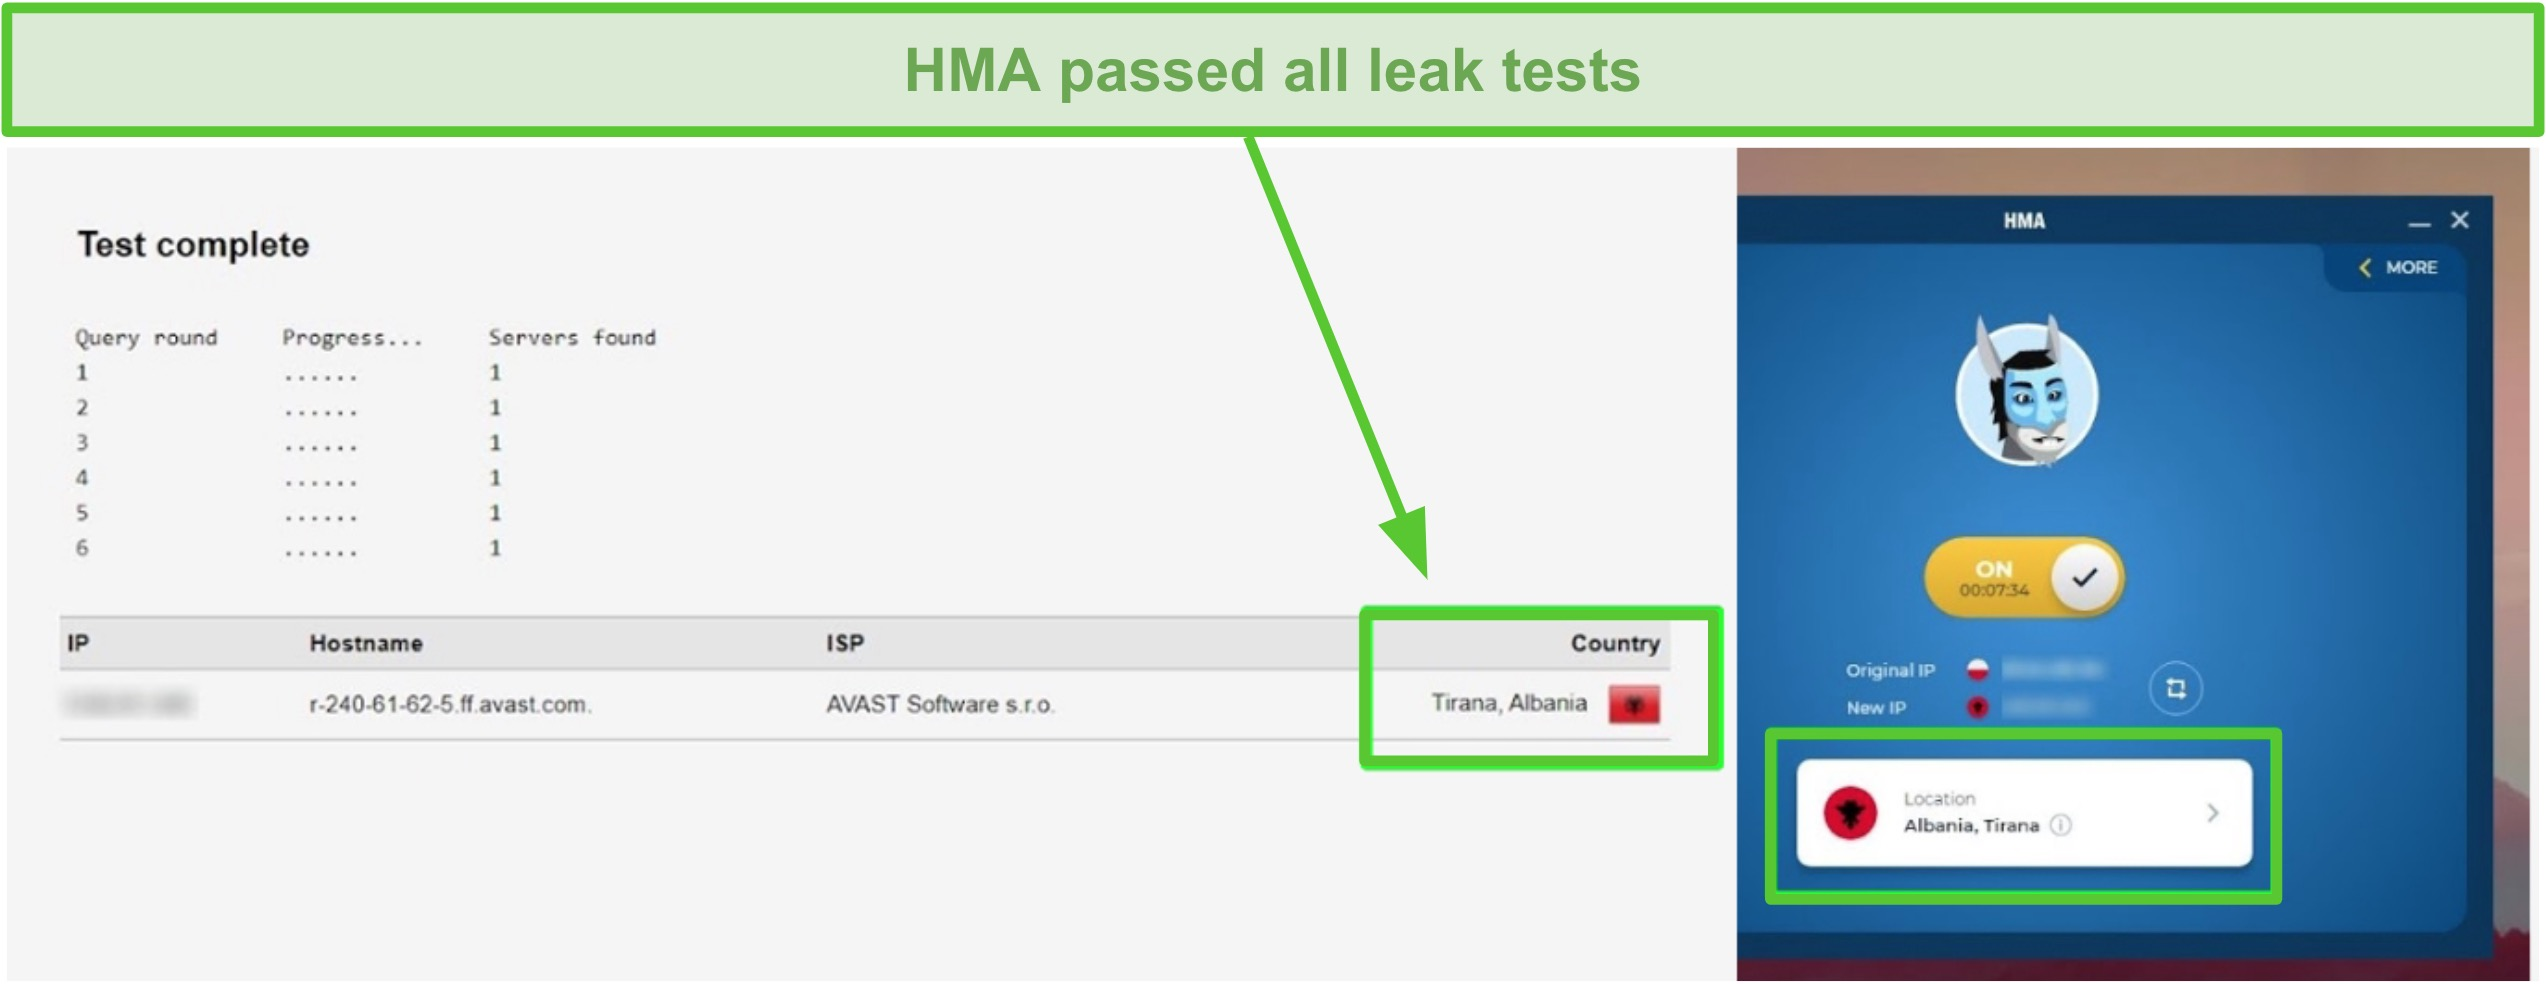 Screenshot of HMA passing a DNS test while connected to an Albanian server.